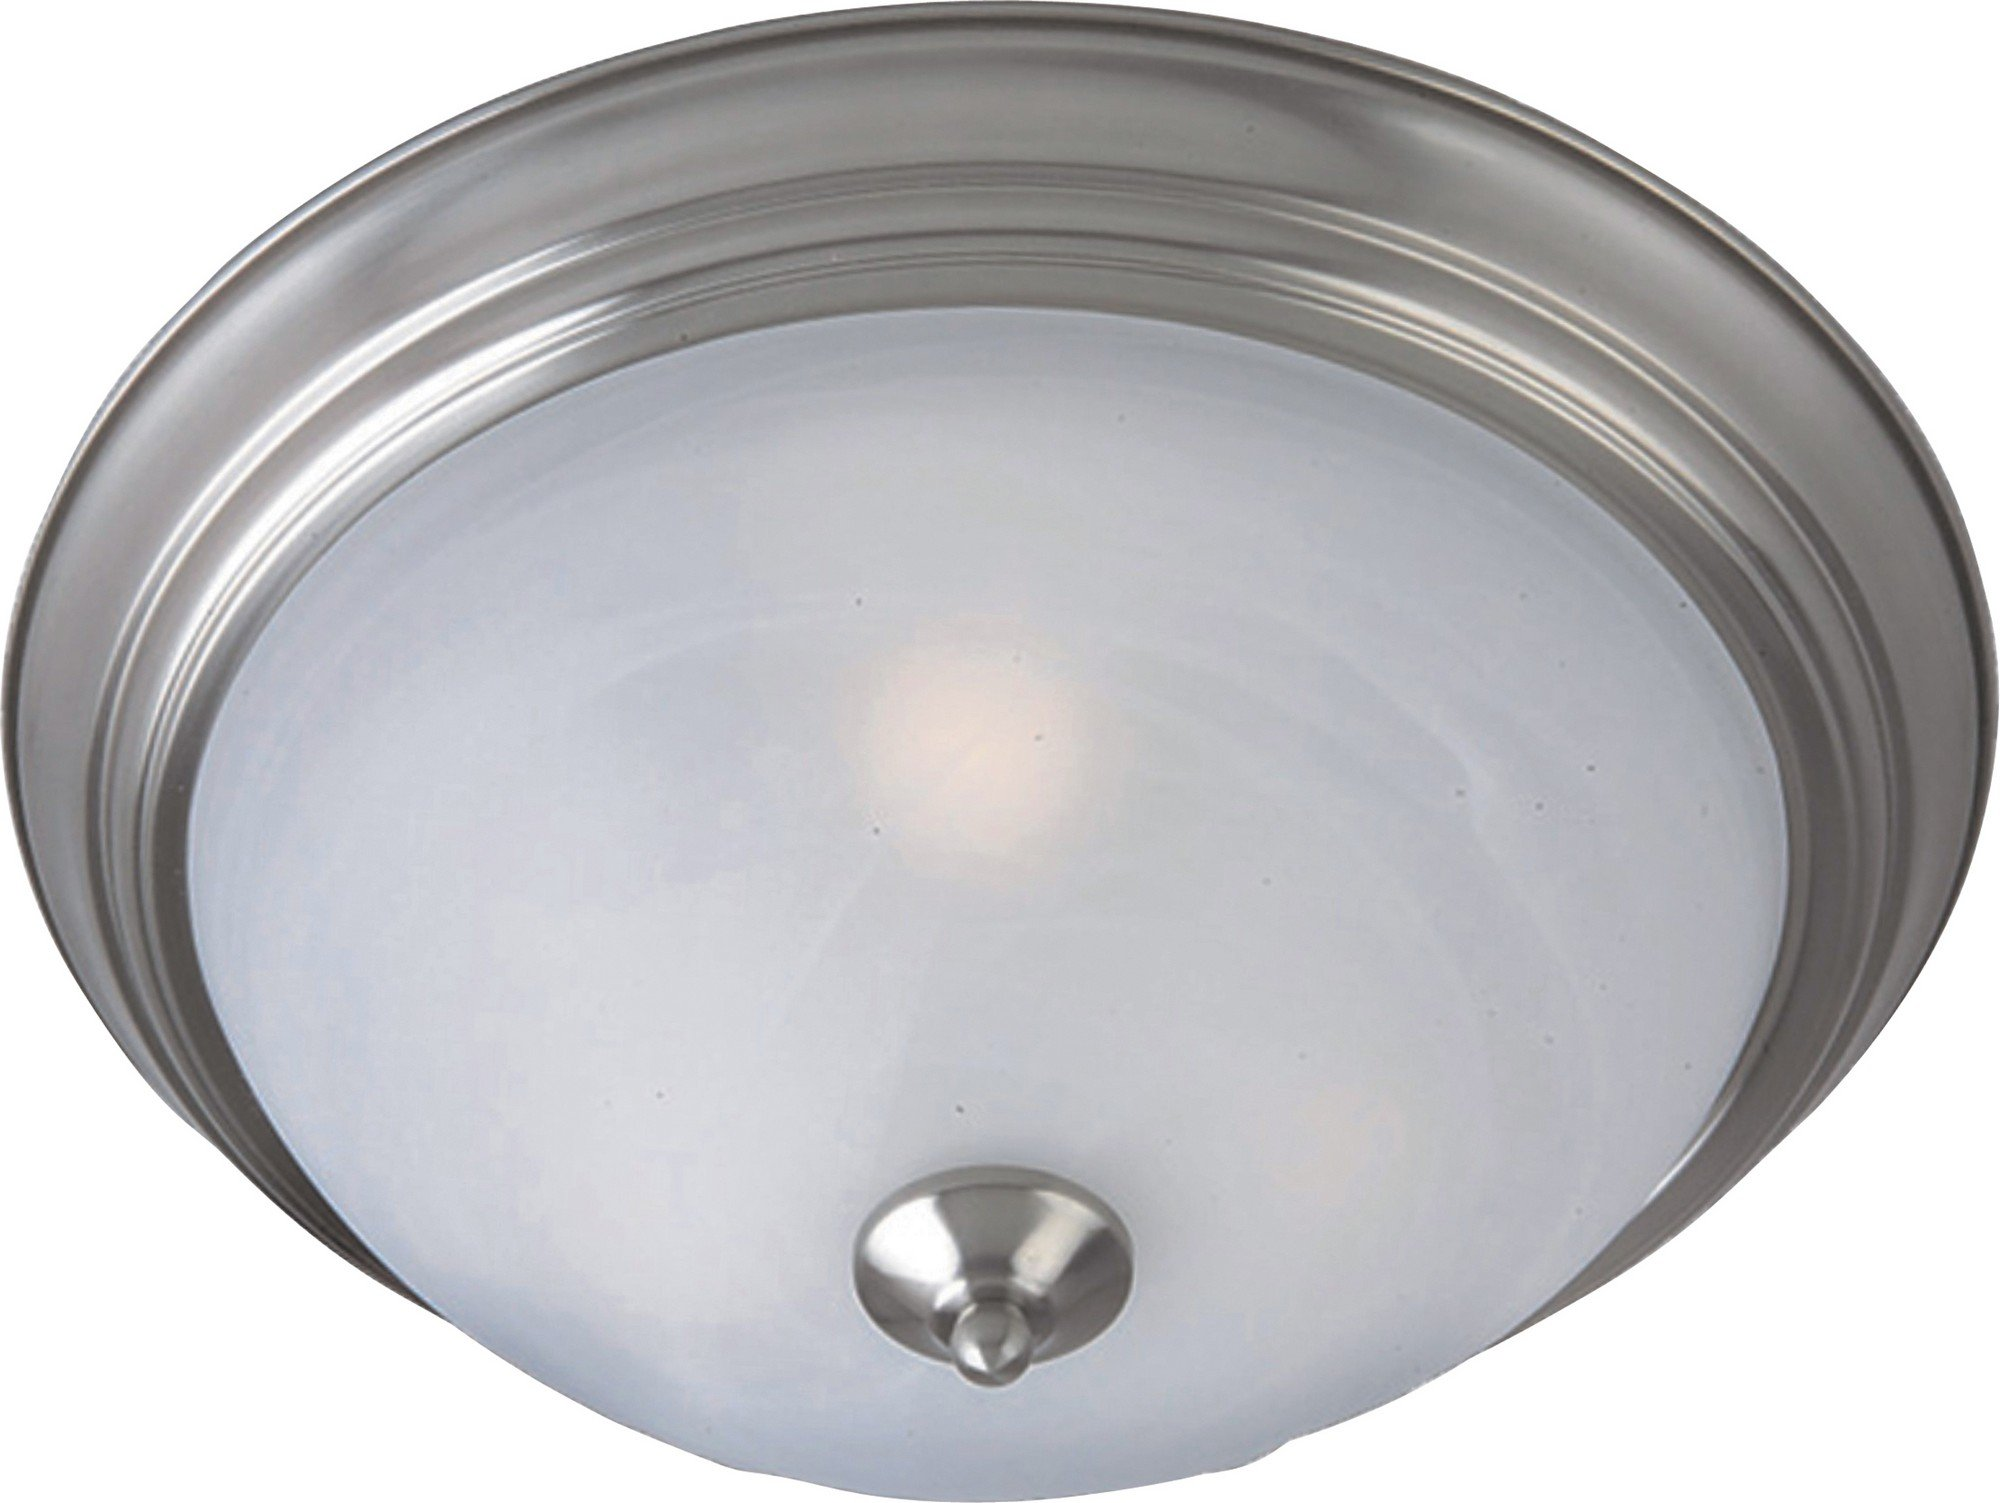 Maxim 1940MRSN Outdoor Essentials 1-Light Outdoor Ceiling Mount, Satin Nickel Finish, Marble Glass, MB Incandescent Incandescent Bulb , 100W Max., Damp Safety Rating, Standard Dimmable, Glass Shade Material, 4600 Rated Lumens